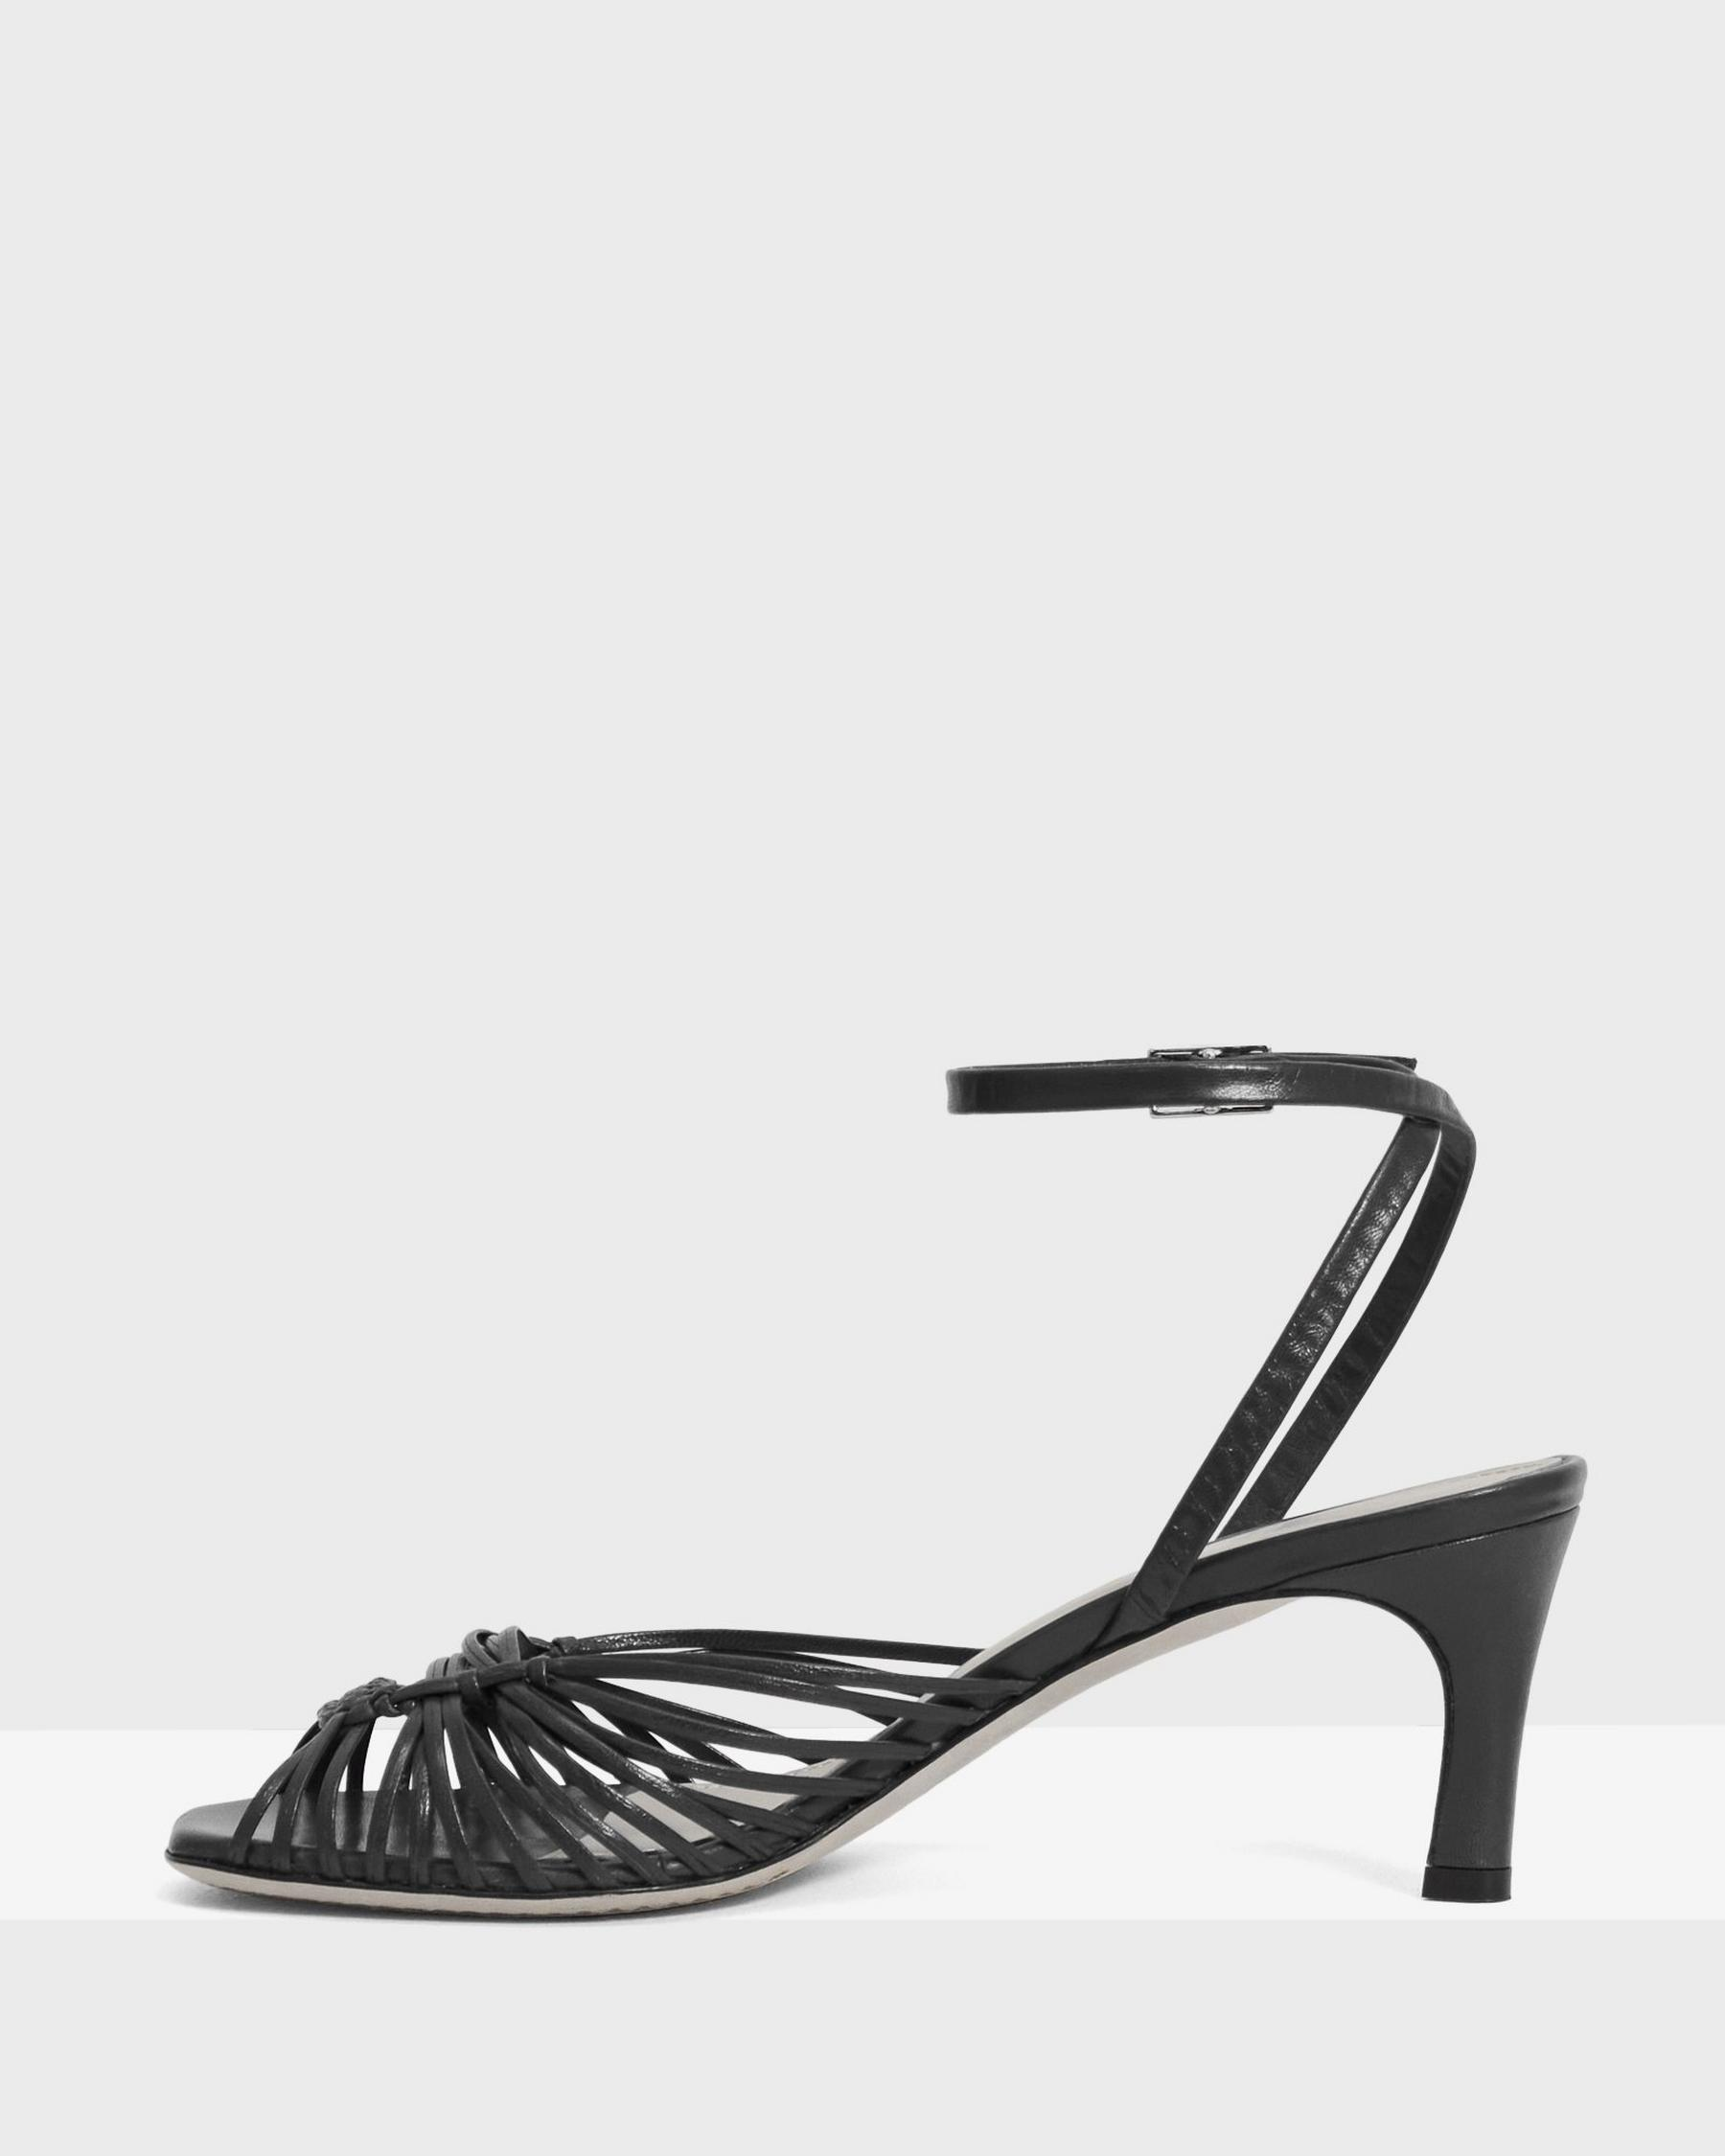 Hand-Braided Sandal in Leather 4